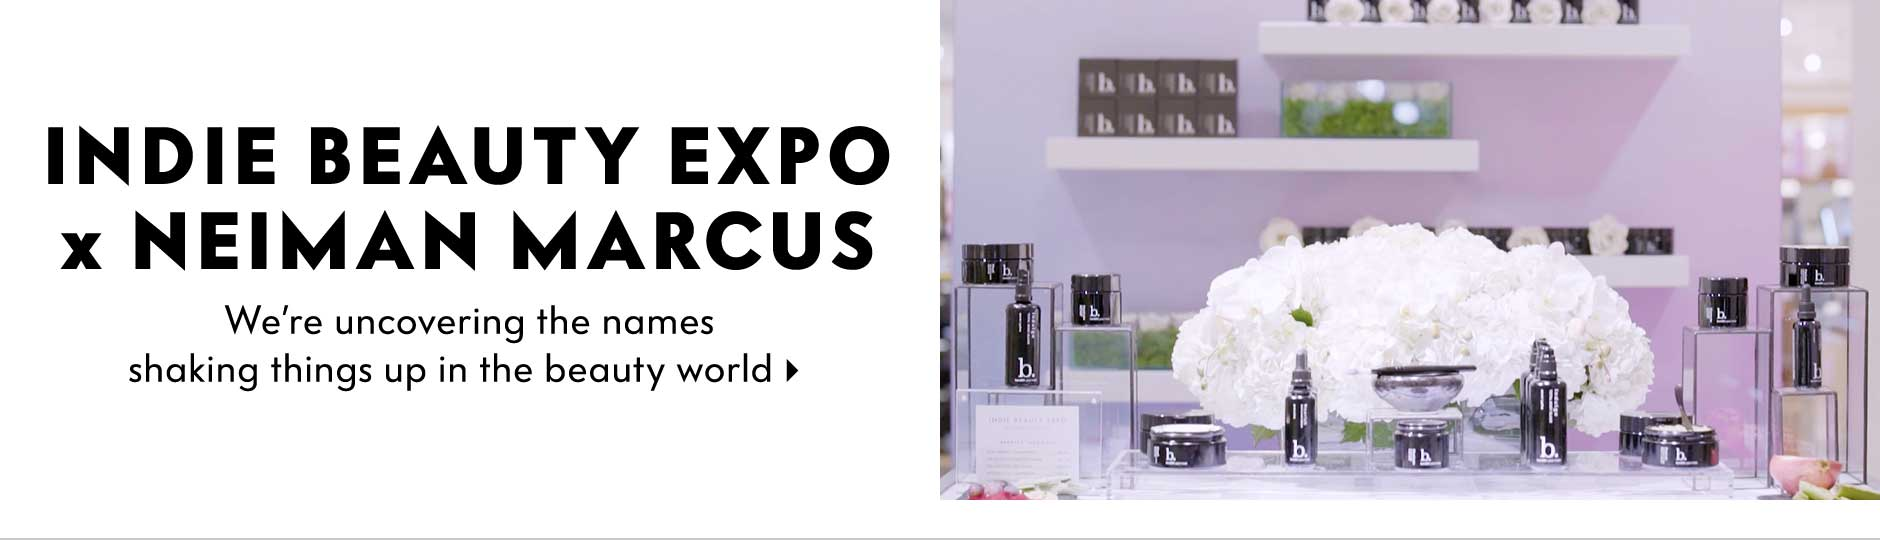 Indie Beauty Expo x Neiman Marcus - We're uncovering the names shaking things up in the beauty world